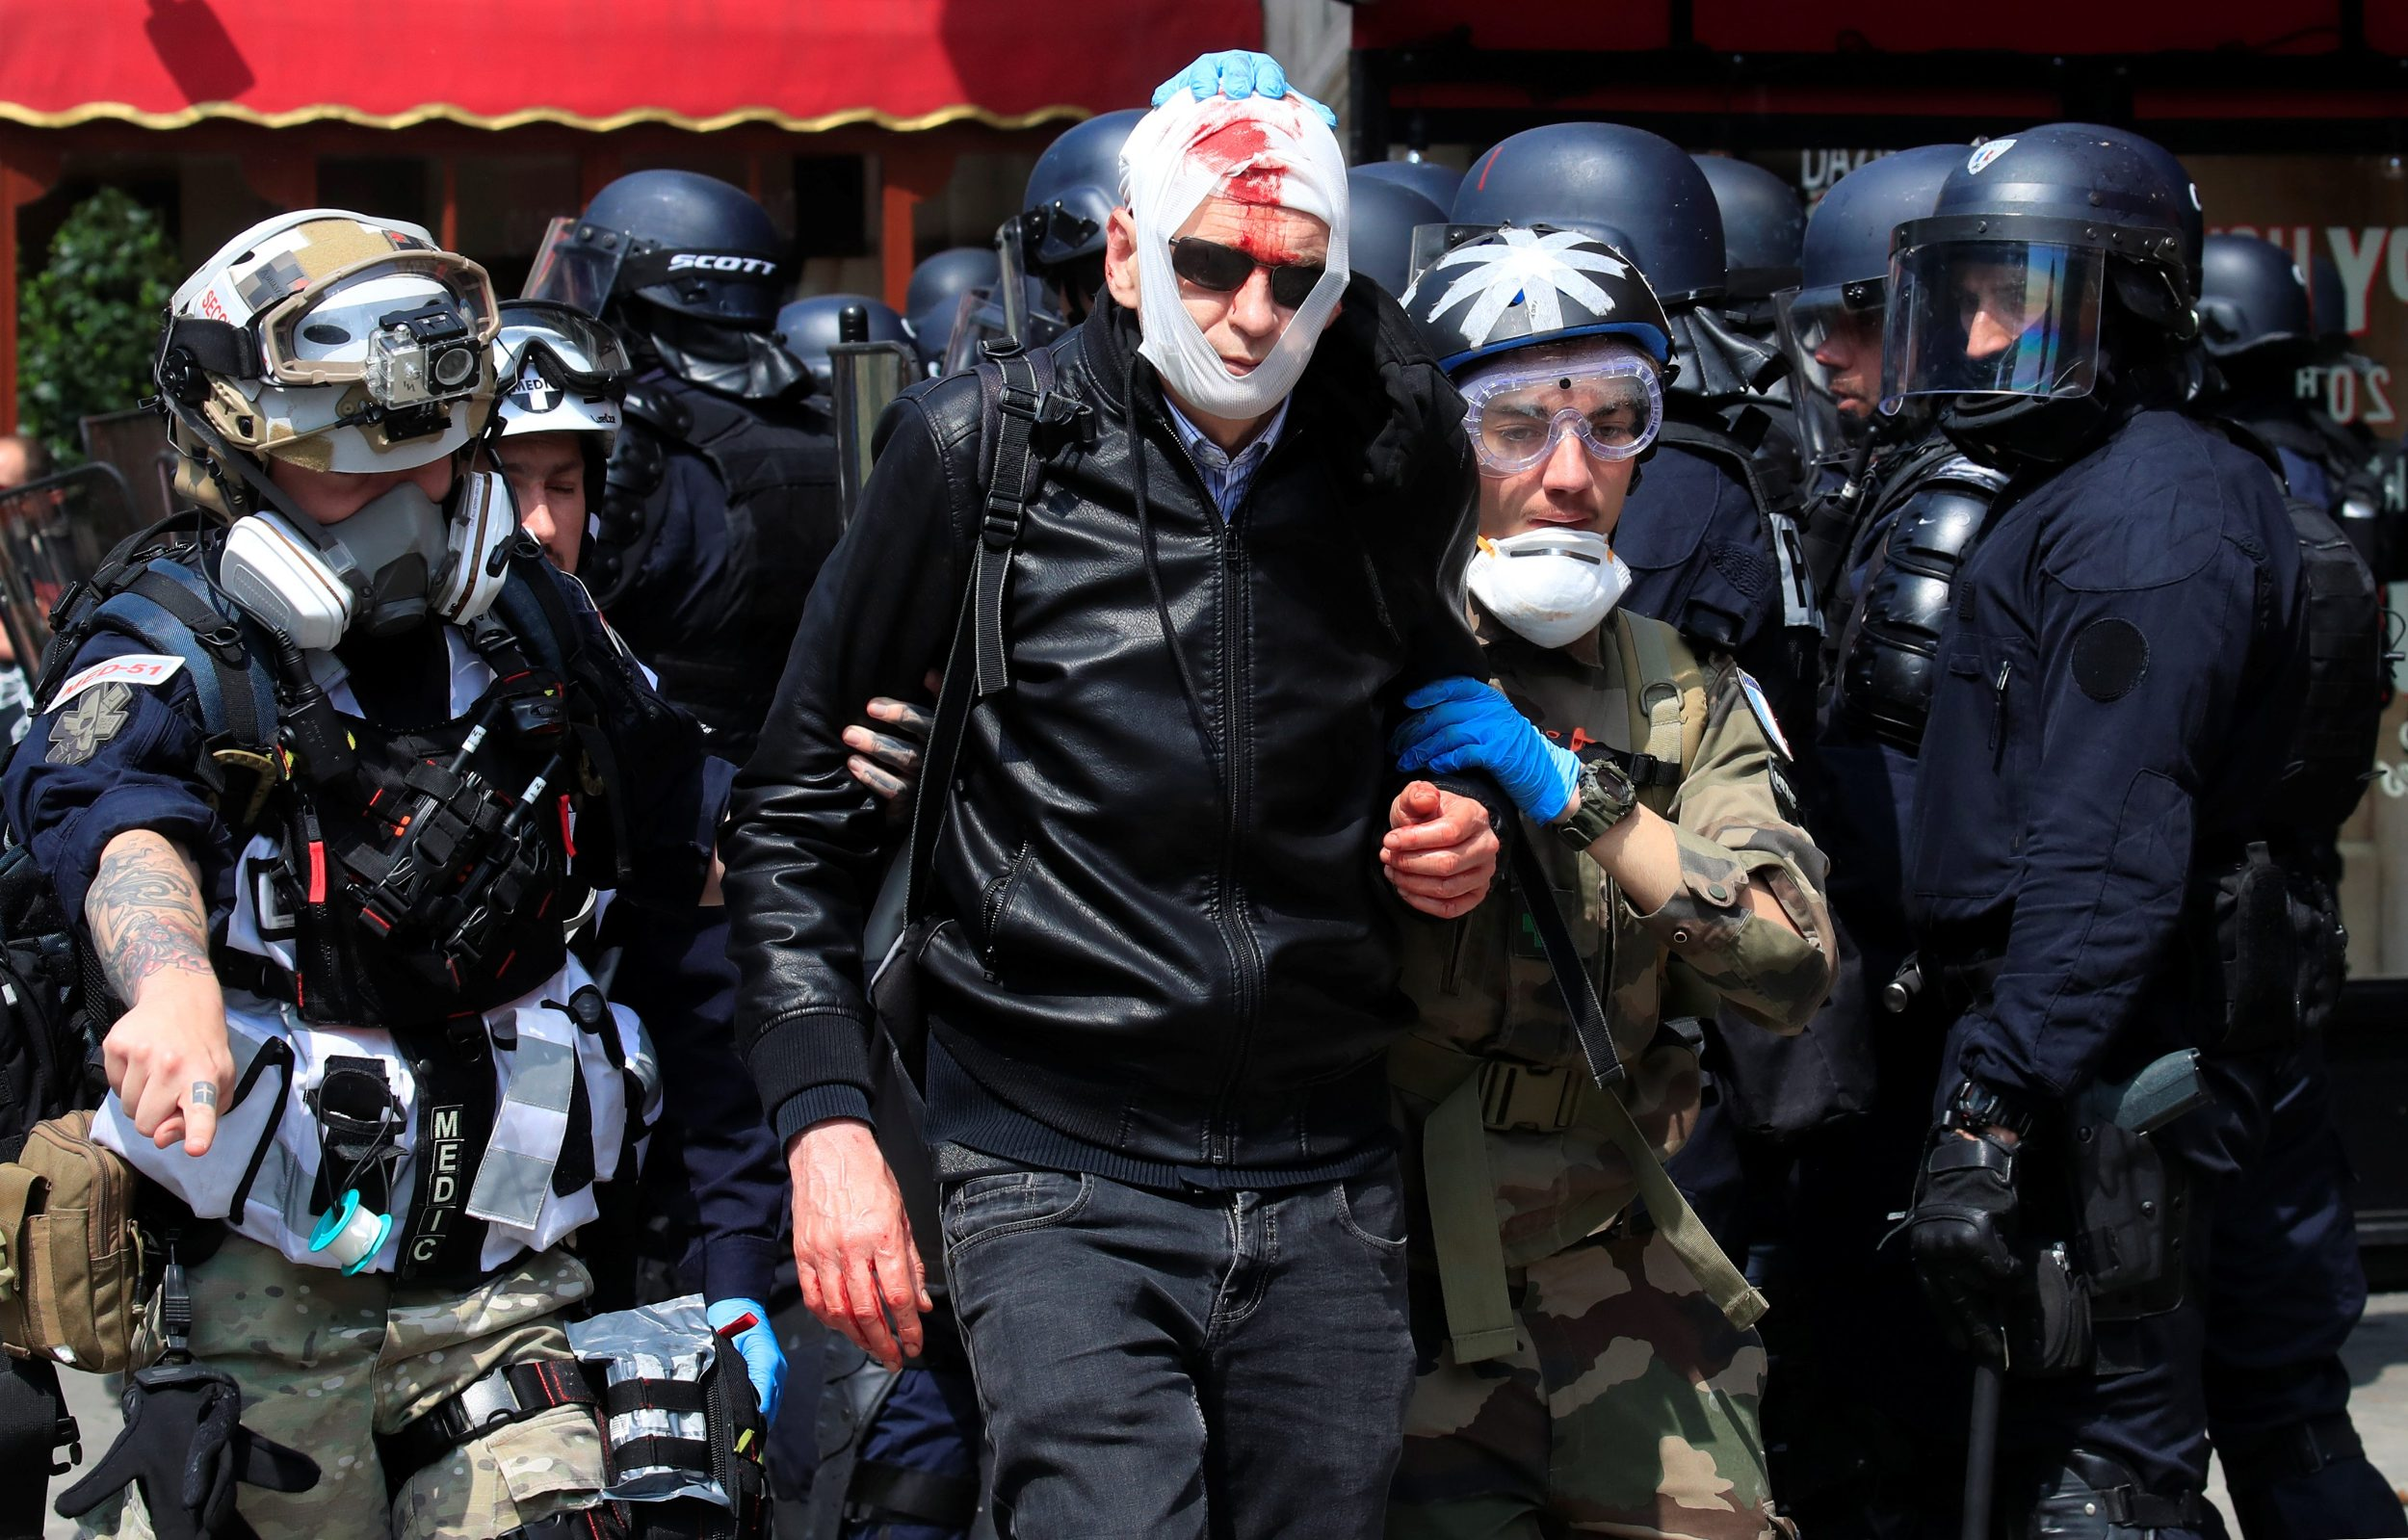 2019-05-01T114931Z_773954942_RC1ABE62FD30_RTRMADP_3_MAY-DAY-FRANCE-PROTESTS